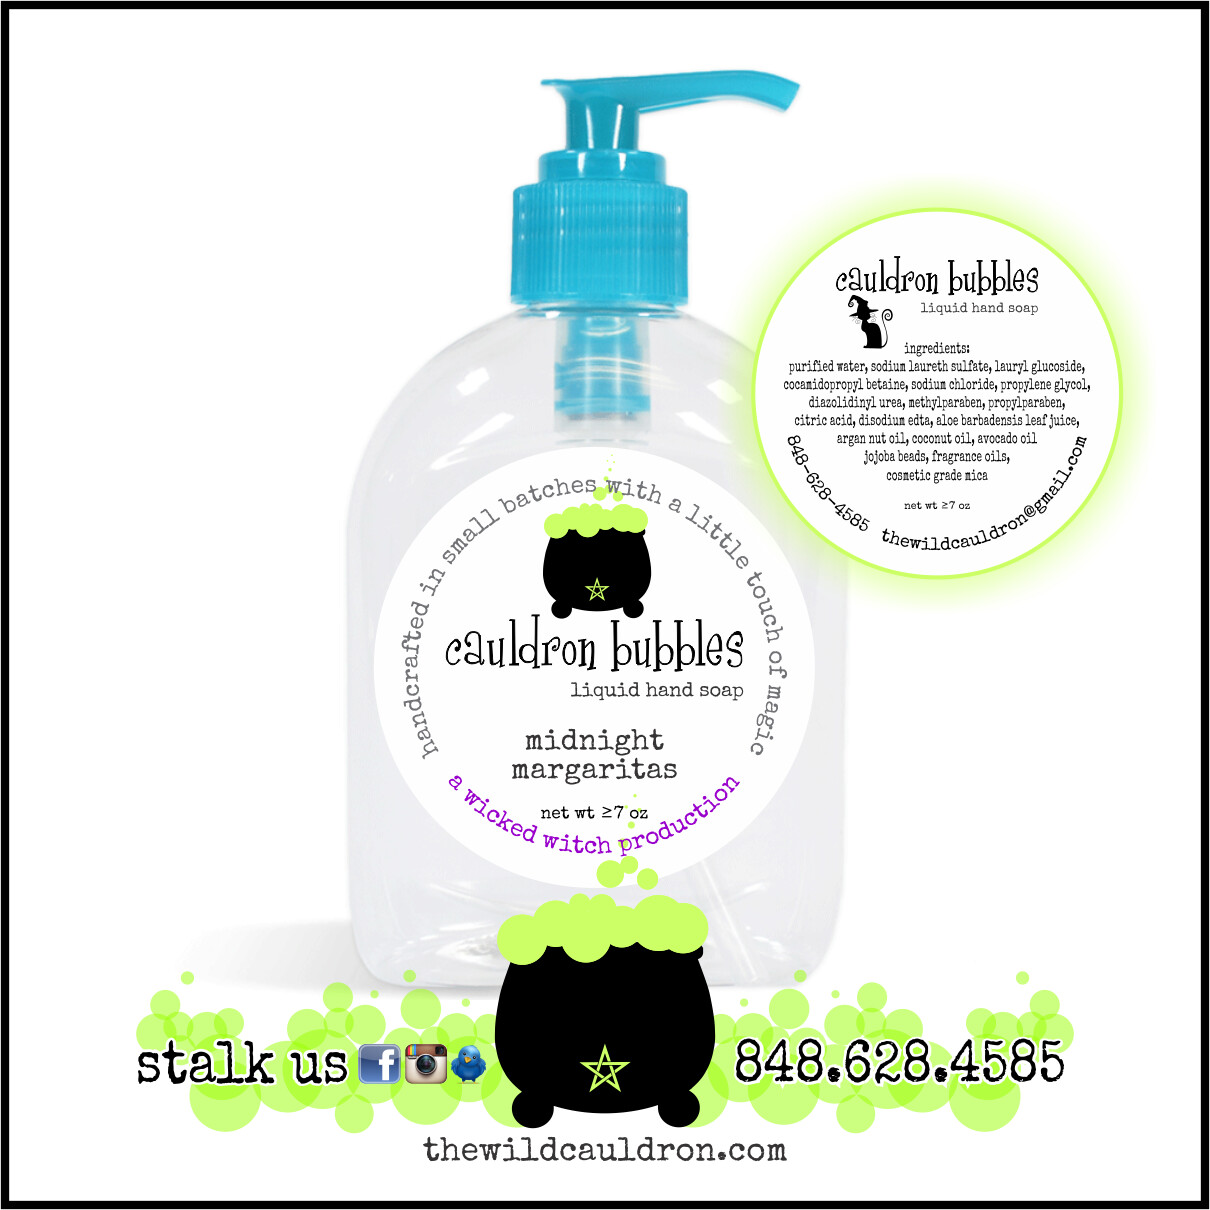 Midnight Margaritas Cauldron Bubbles Hand Soap